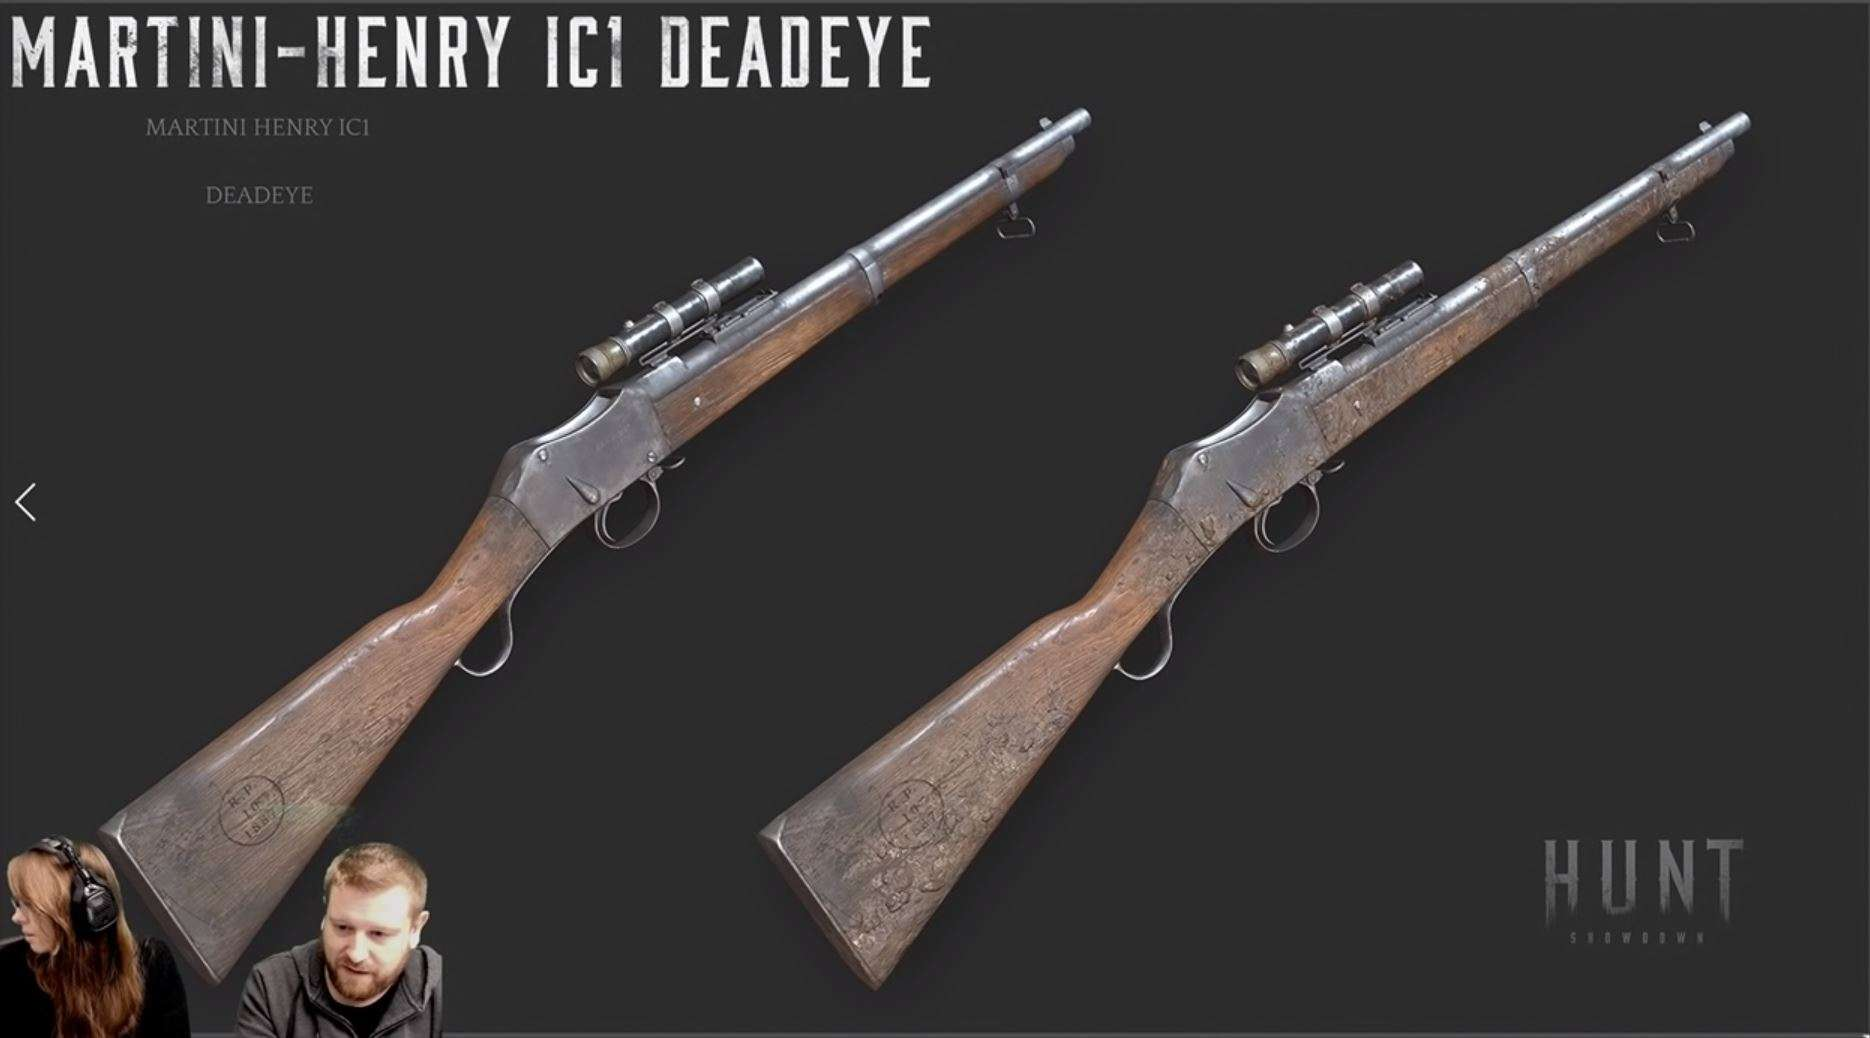 hunt showdown updat 1.1.3 new weapons